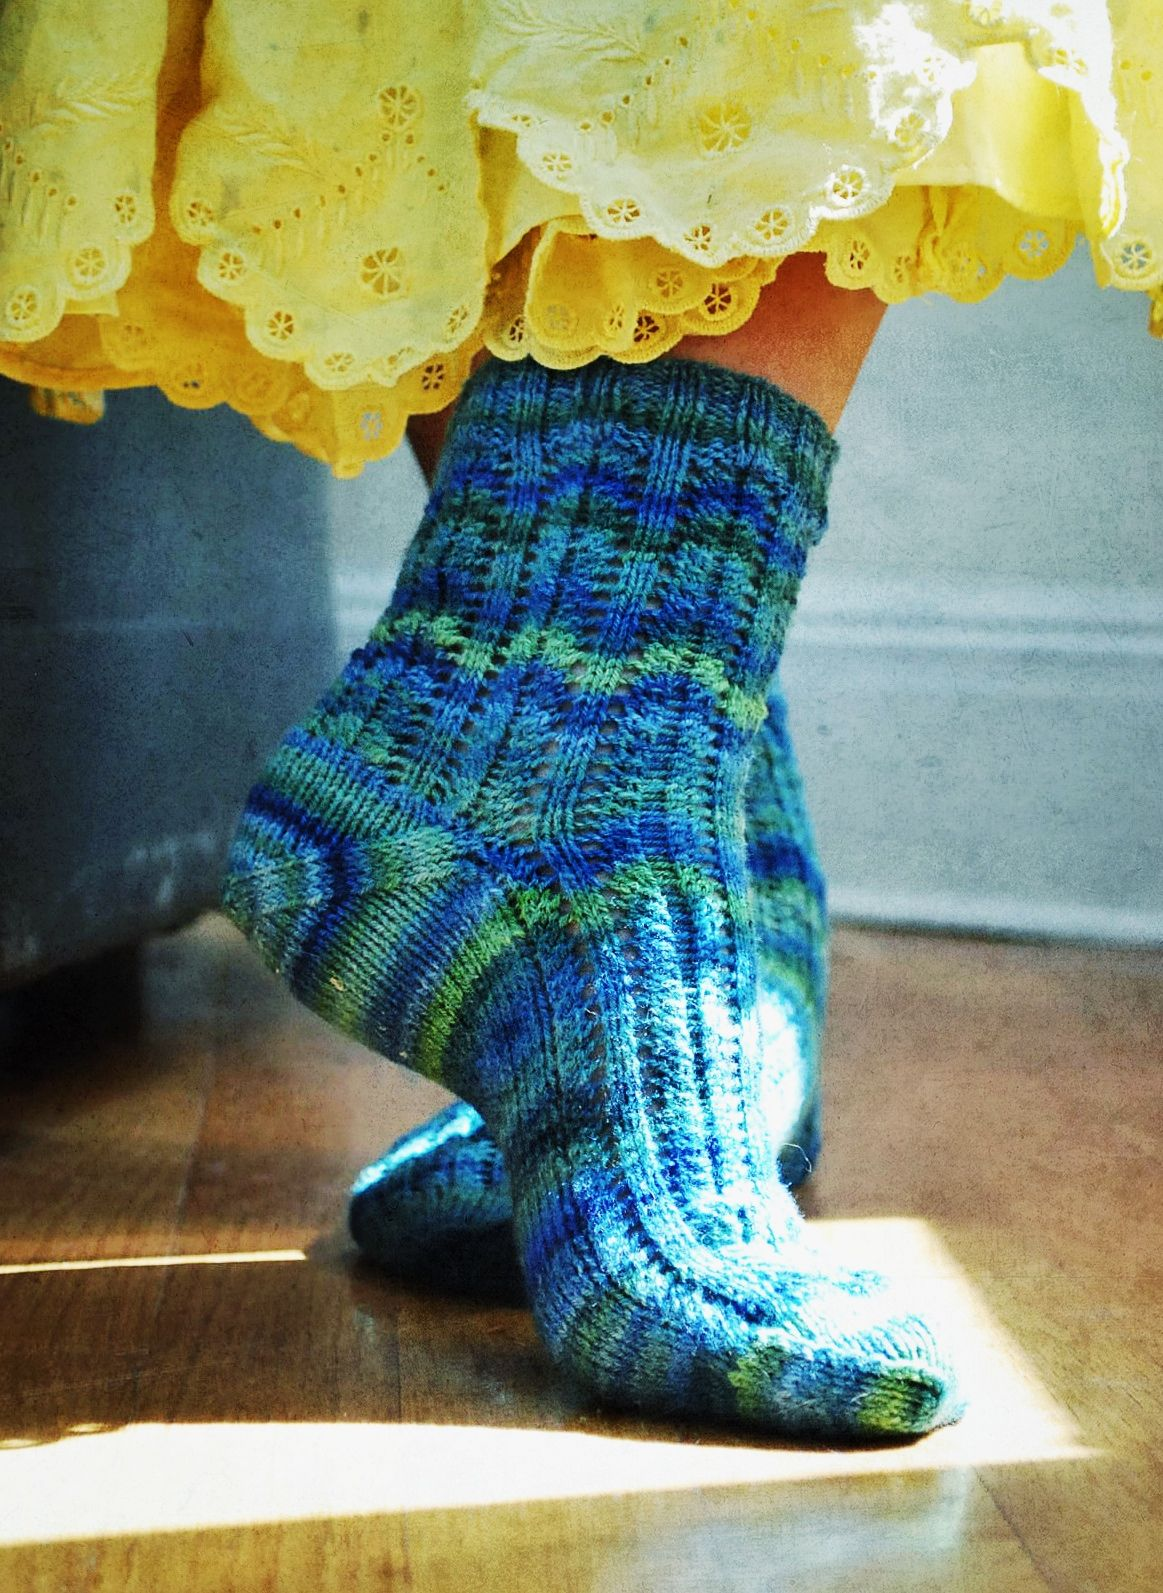 Groovy socks free sock knitting pattern on ravelry by caroline groovy socks free sock knitting pattern on ravelry by caroline hegwer bankloansurffo Gallery